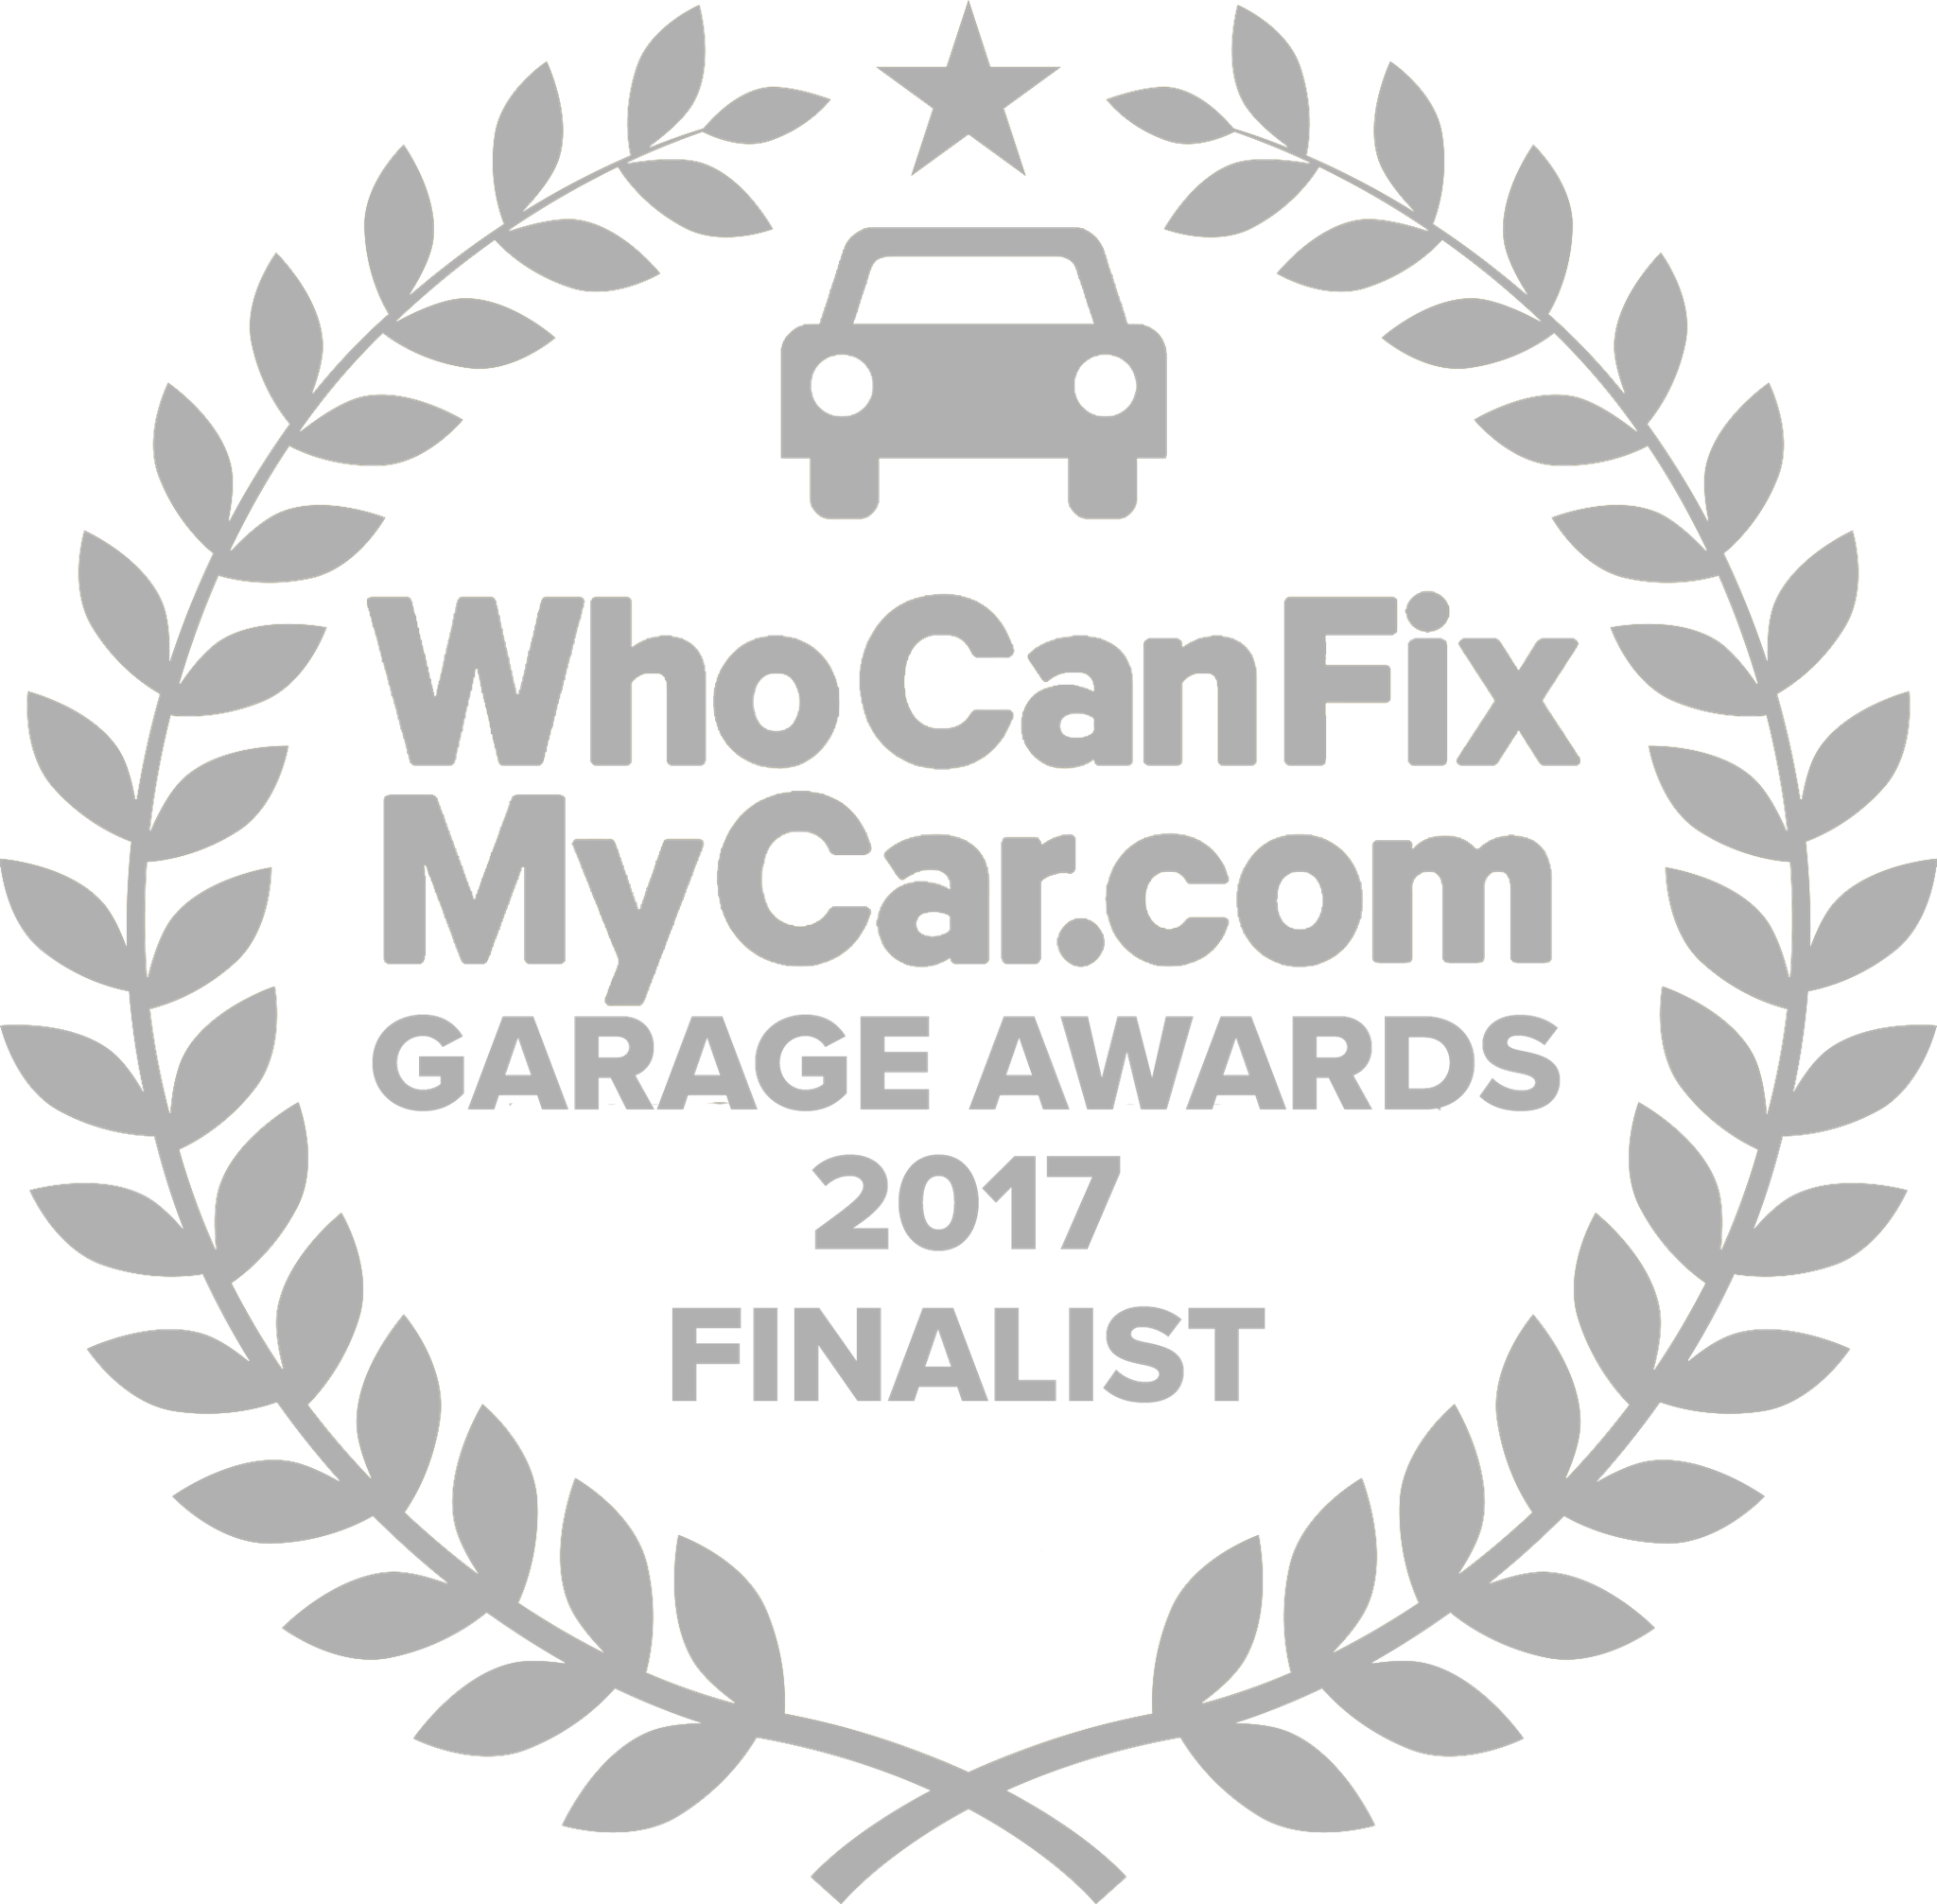 Garage Awards 2017 Finalist